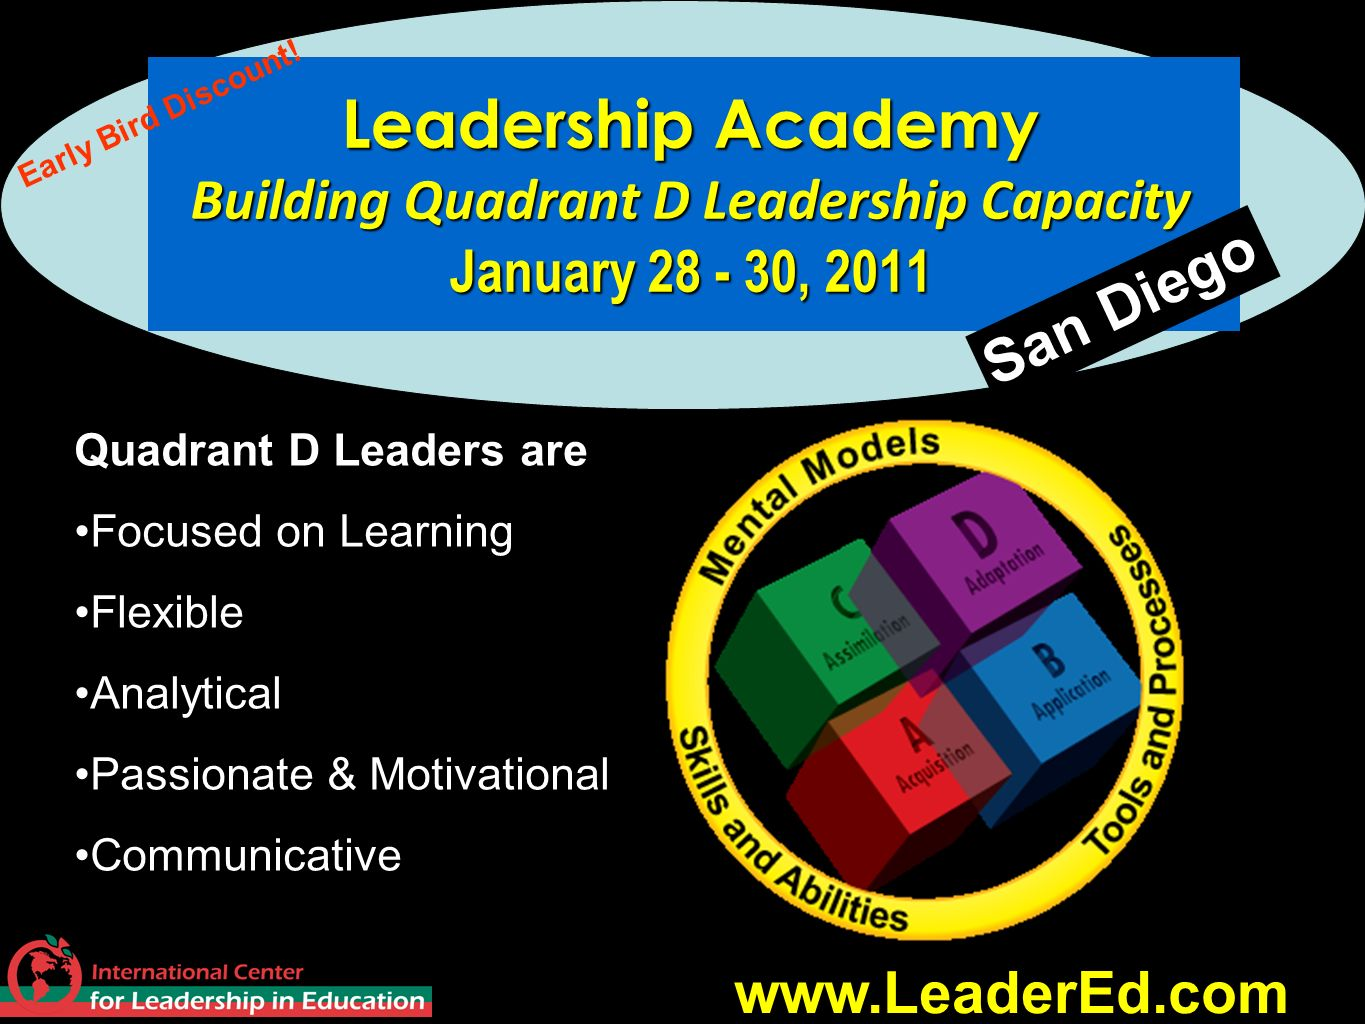 Leadership Academy Building Quadrant D Leadership Capacity January 28 - 30, 2011